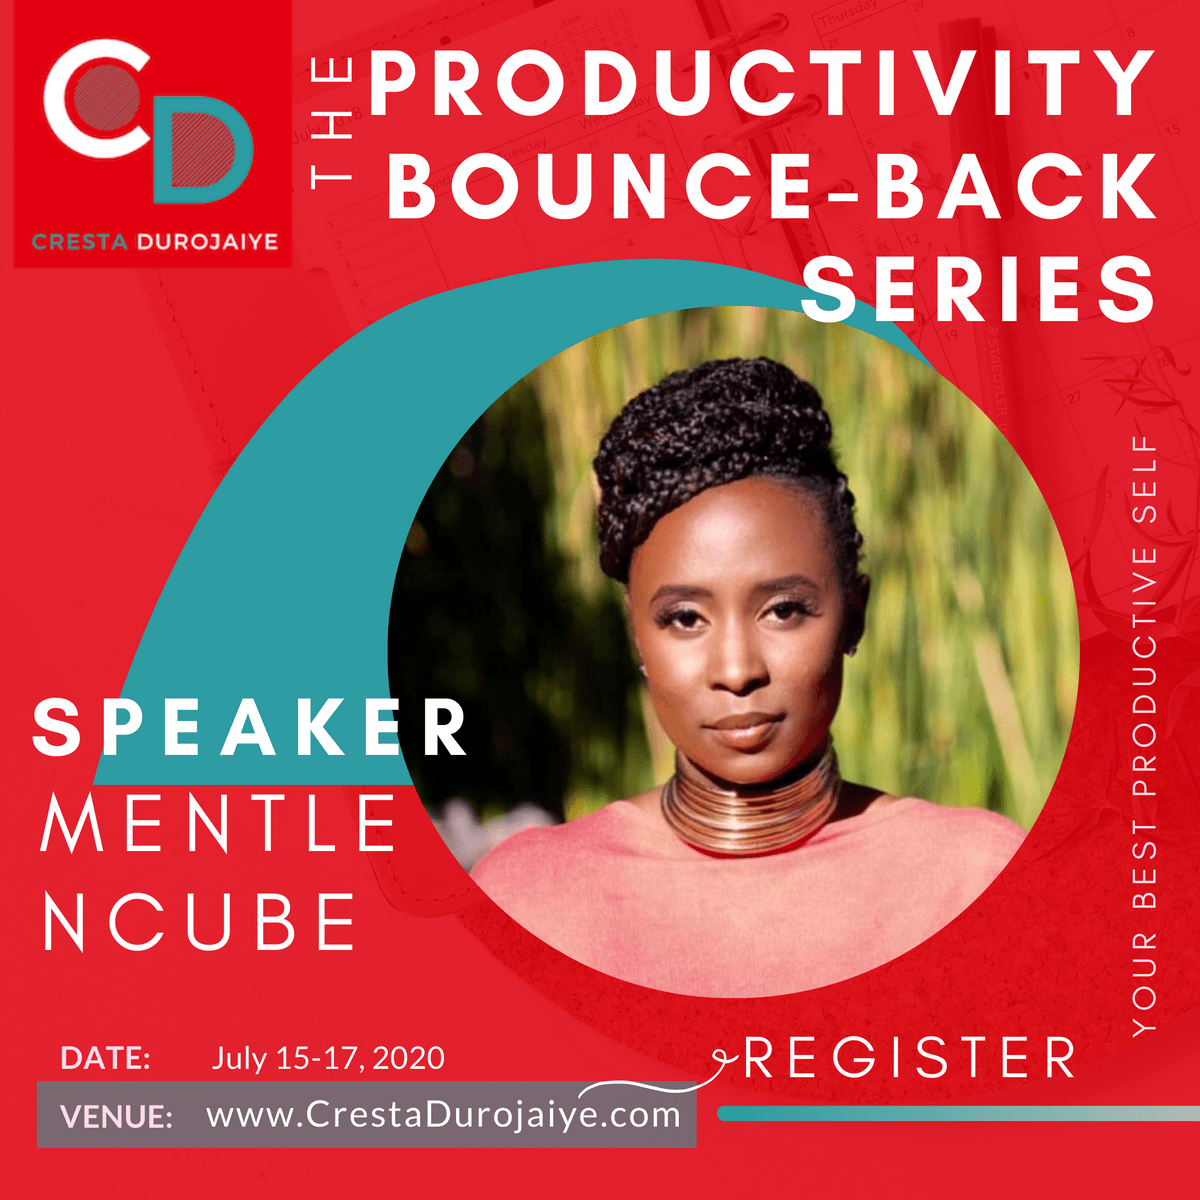 Mentle Ncube is speaking at The Productivity Bounce Back Series